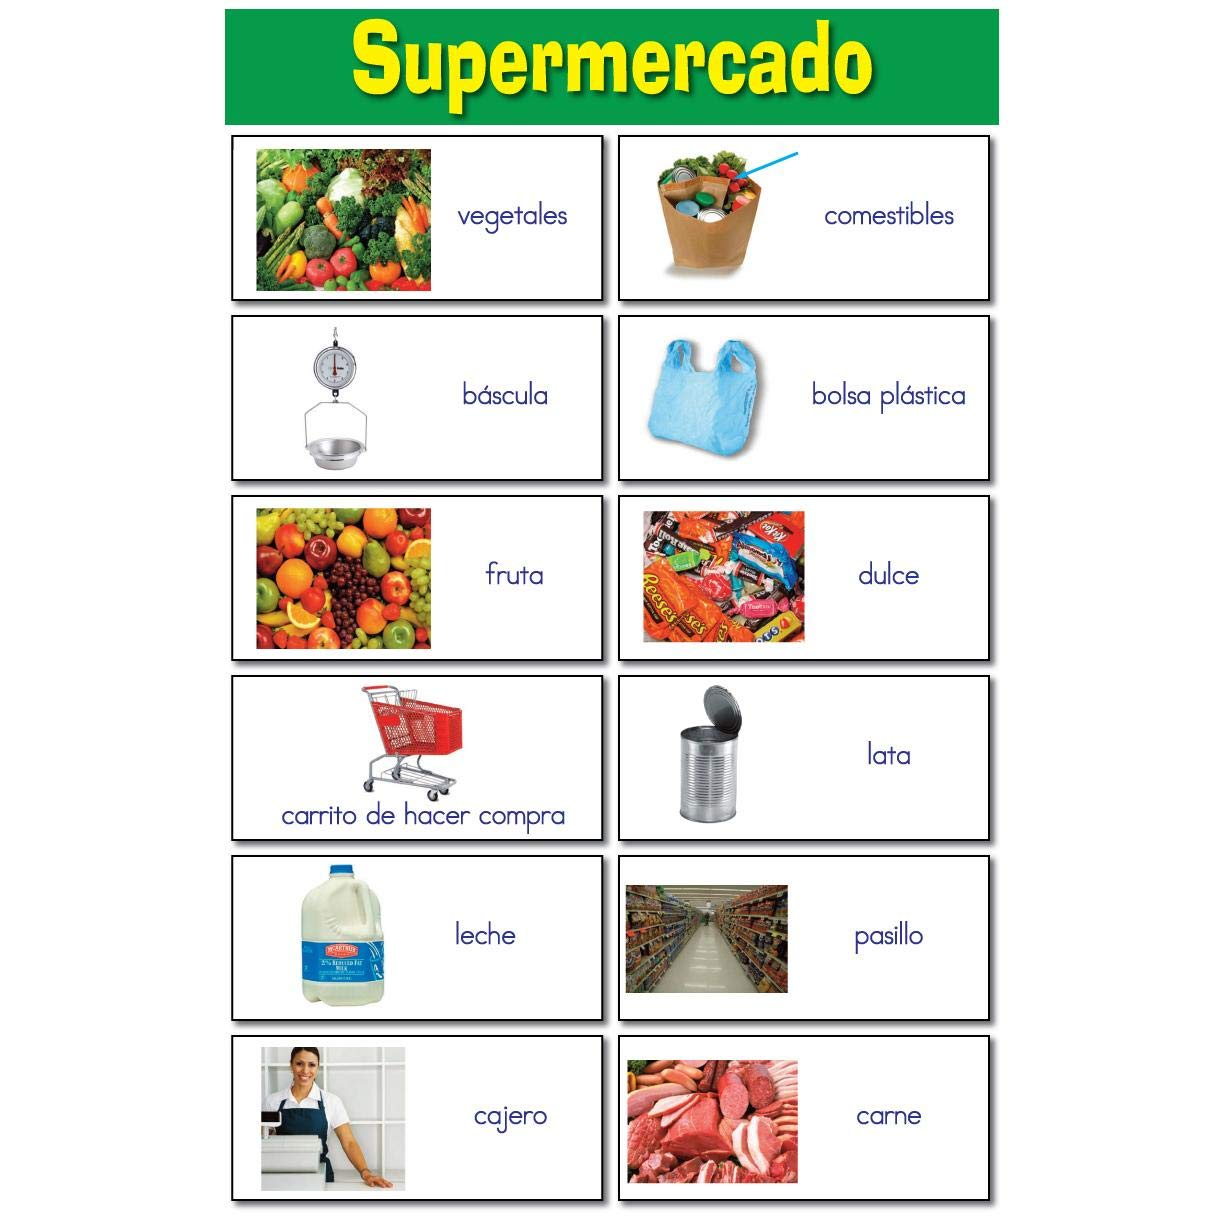 Amazon.com: Ring Cards Spanish Supermarket Educational Laminated Chart: Posters & Prints